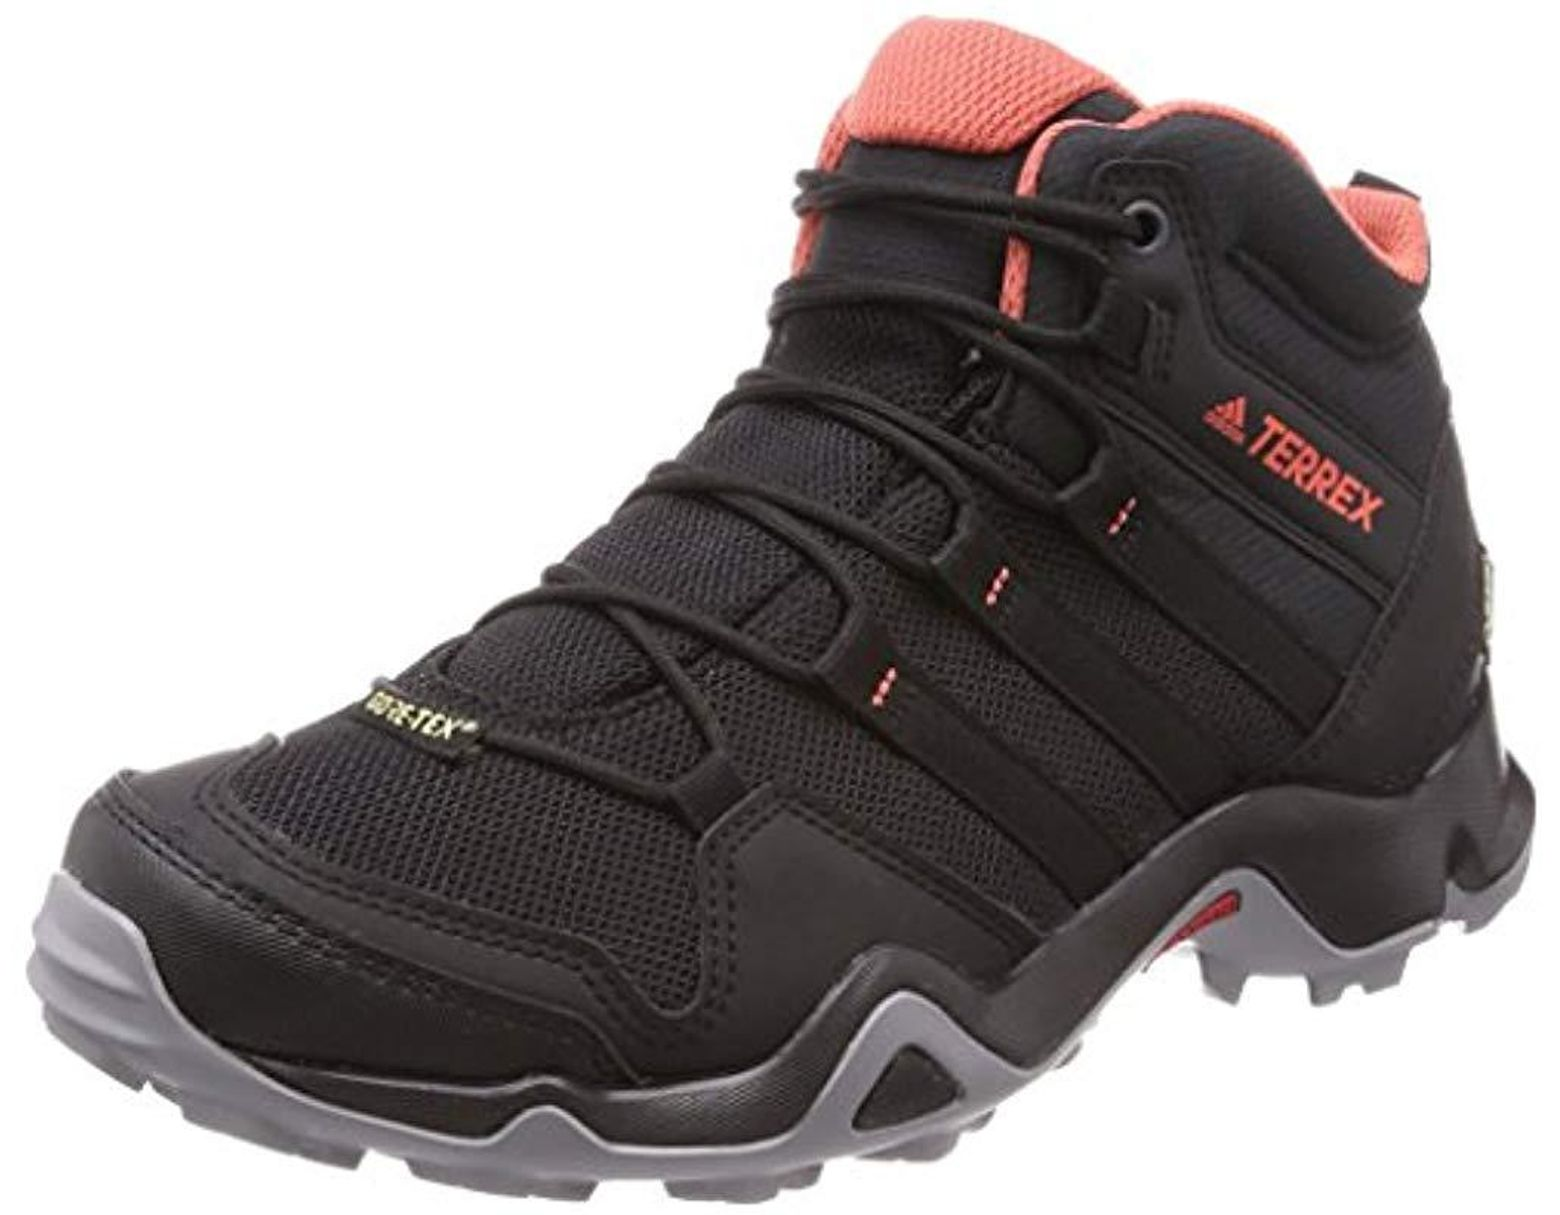 adidas Terrex Ax2r Mid Gtx Low Rise Hiking Shoes in Black - Lyst